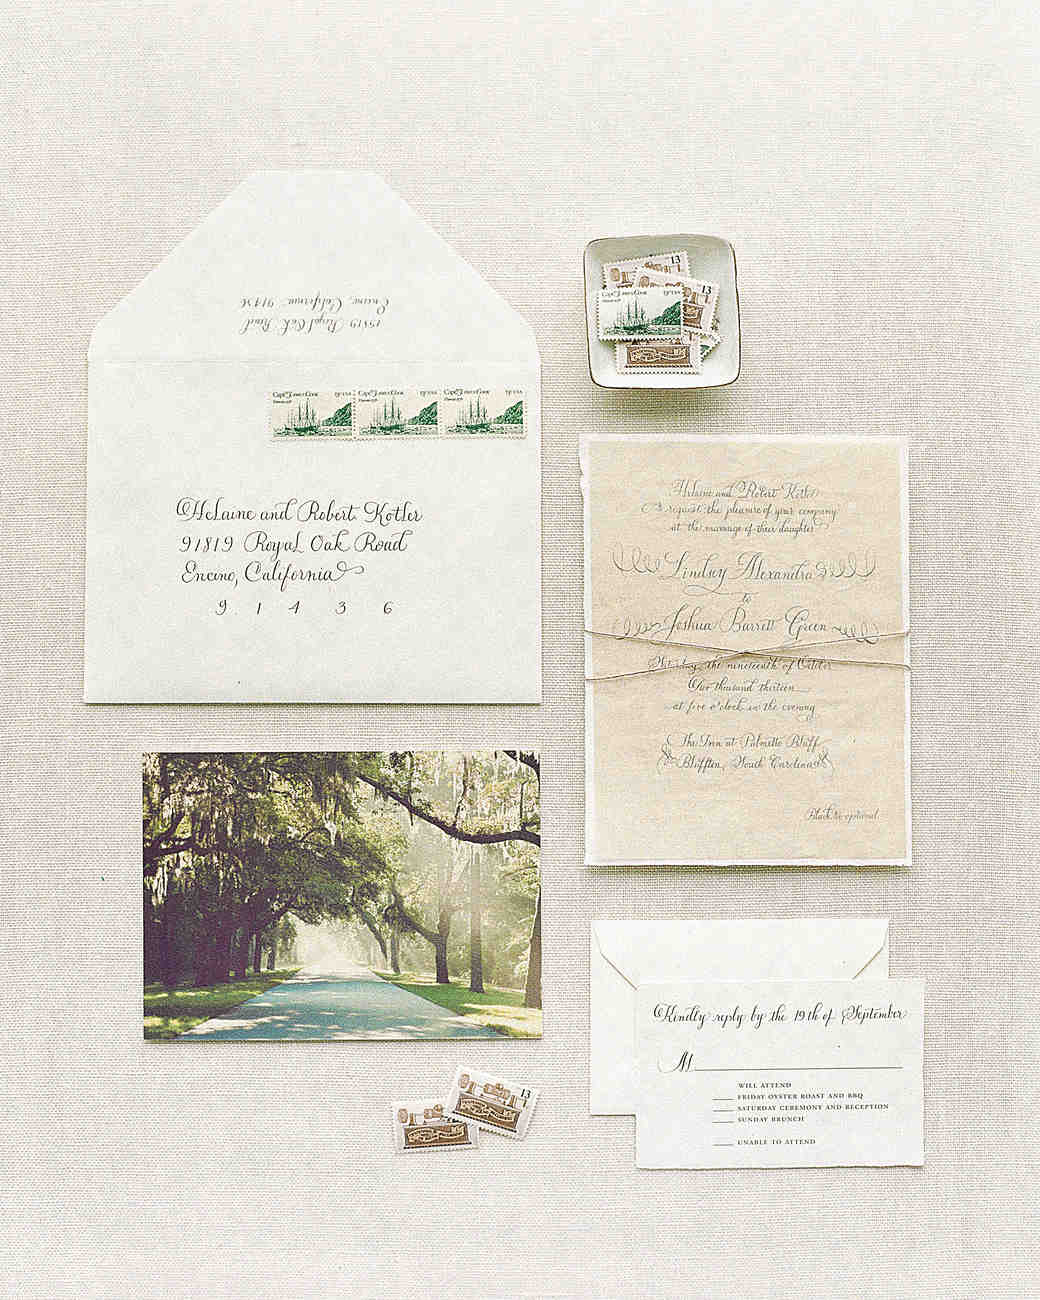 stationary-invitations-2013-lindsey-josh-0263-mwds110860.jpg